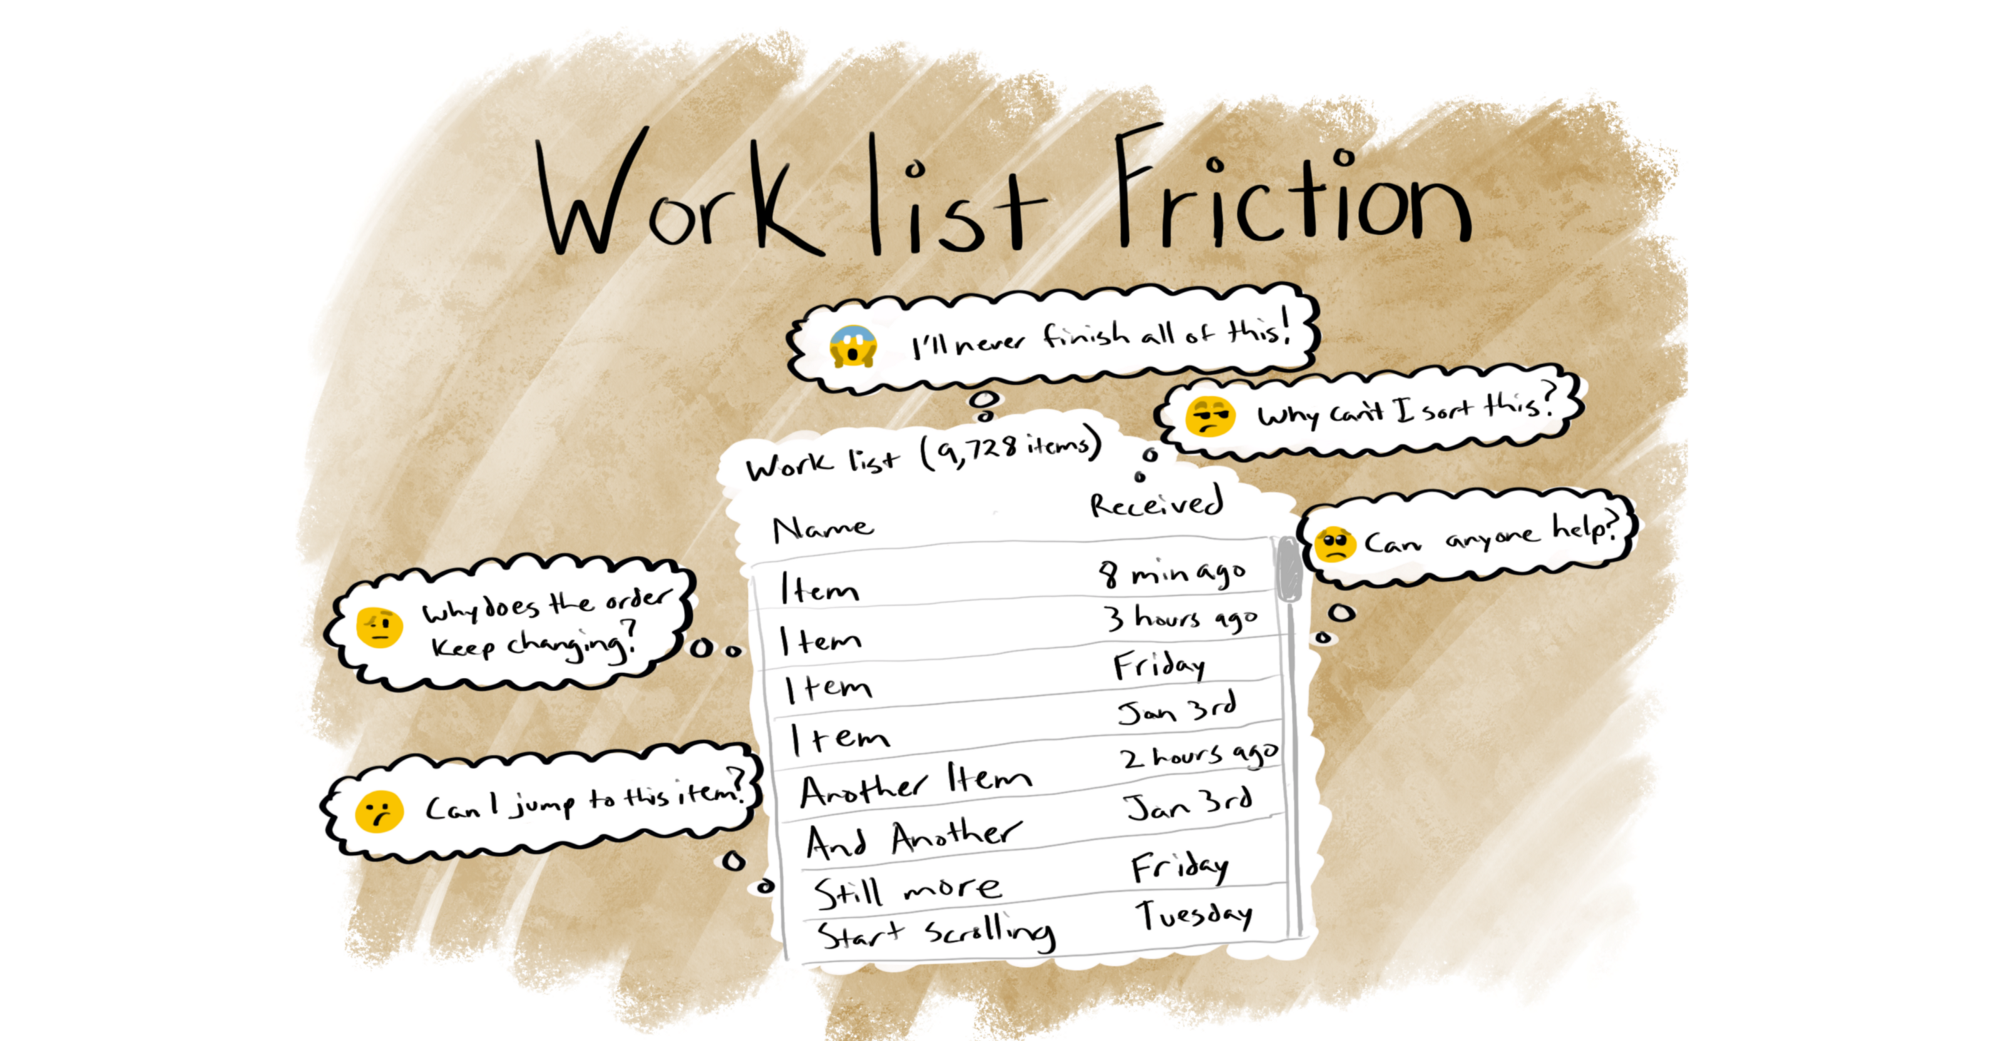 Work List UX Friction — Tackling problems users have when dealing with work lists.